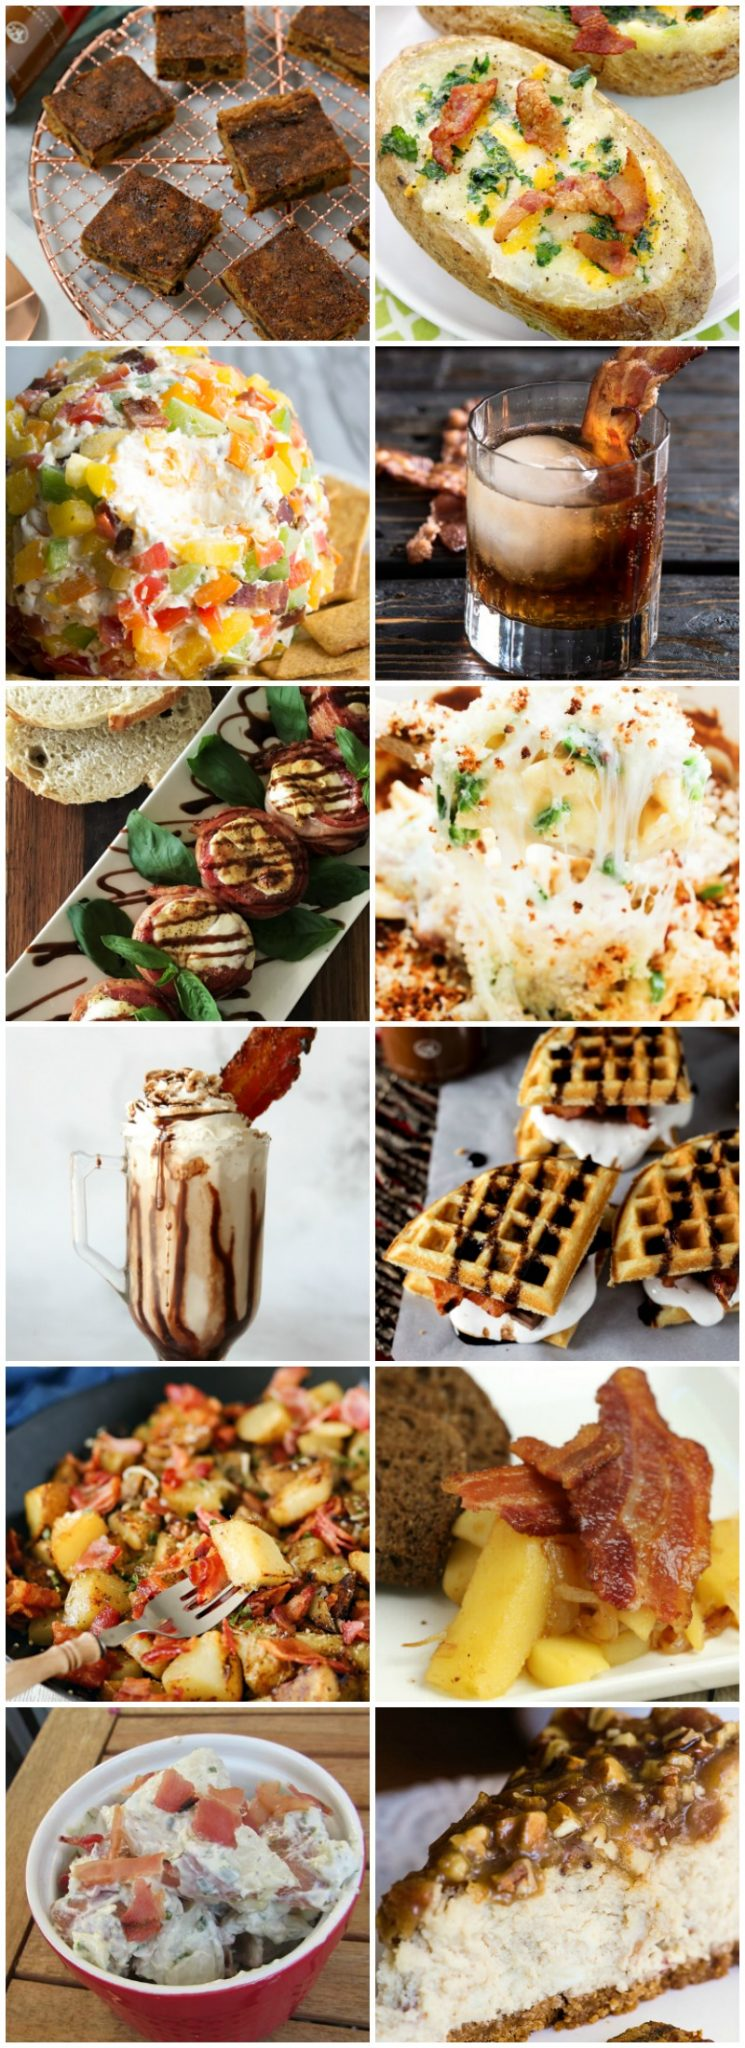 Check out these 12 amazing bacon recipes